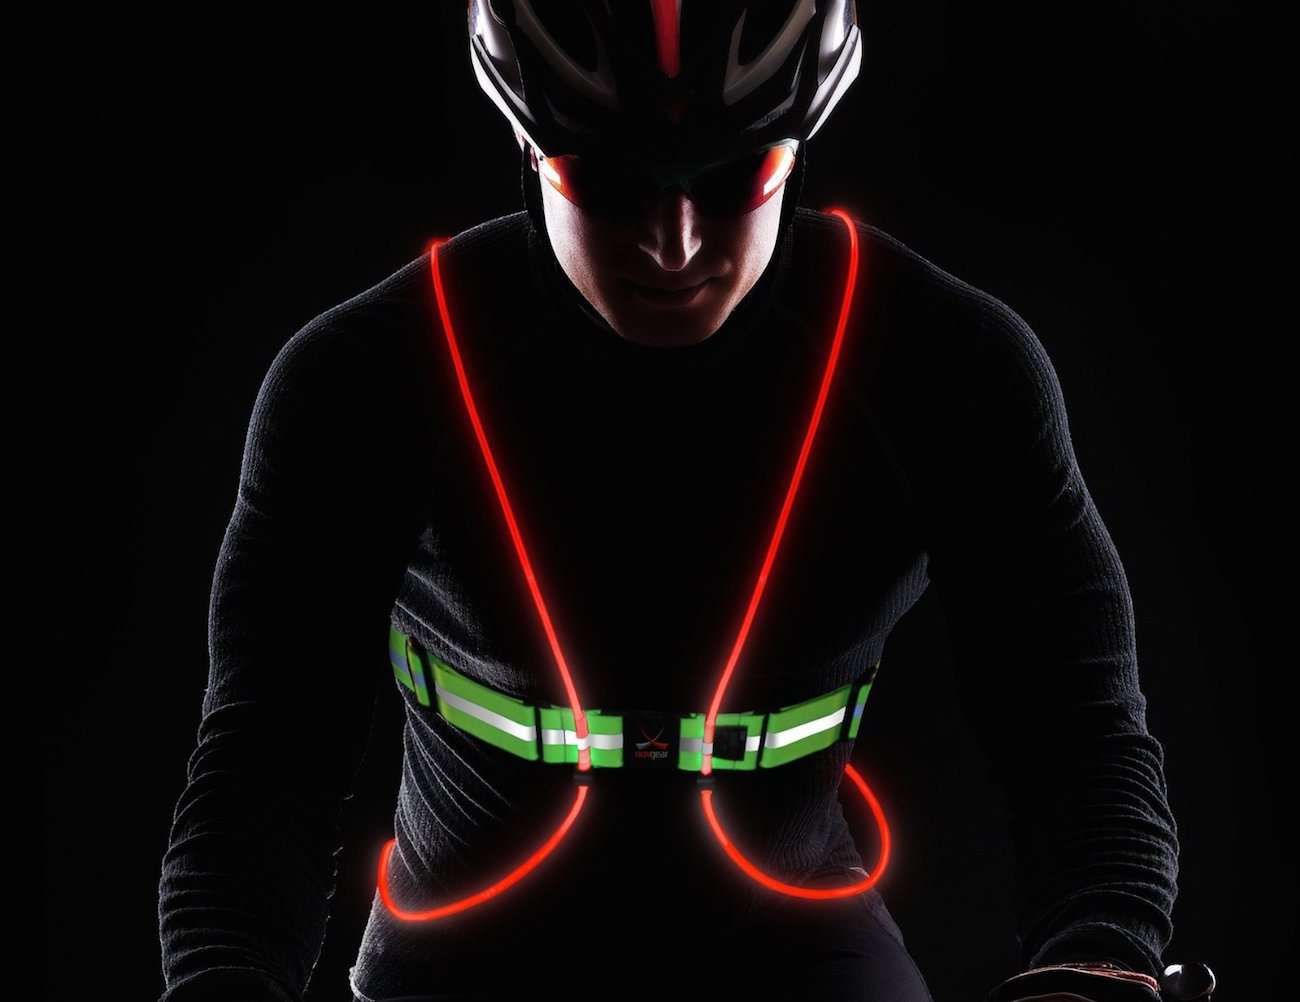 Tracer360+Visibility+Vest+%26%238211%3B+For+Bike+Riders